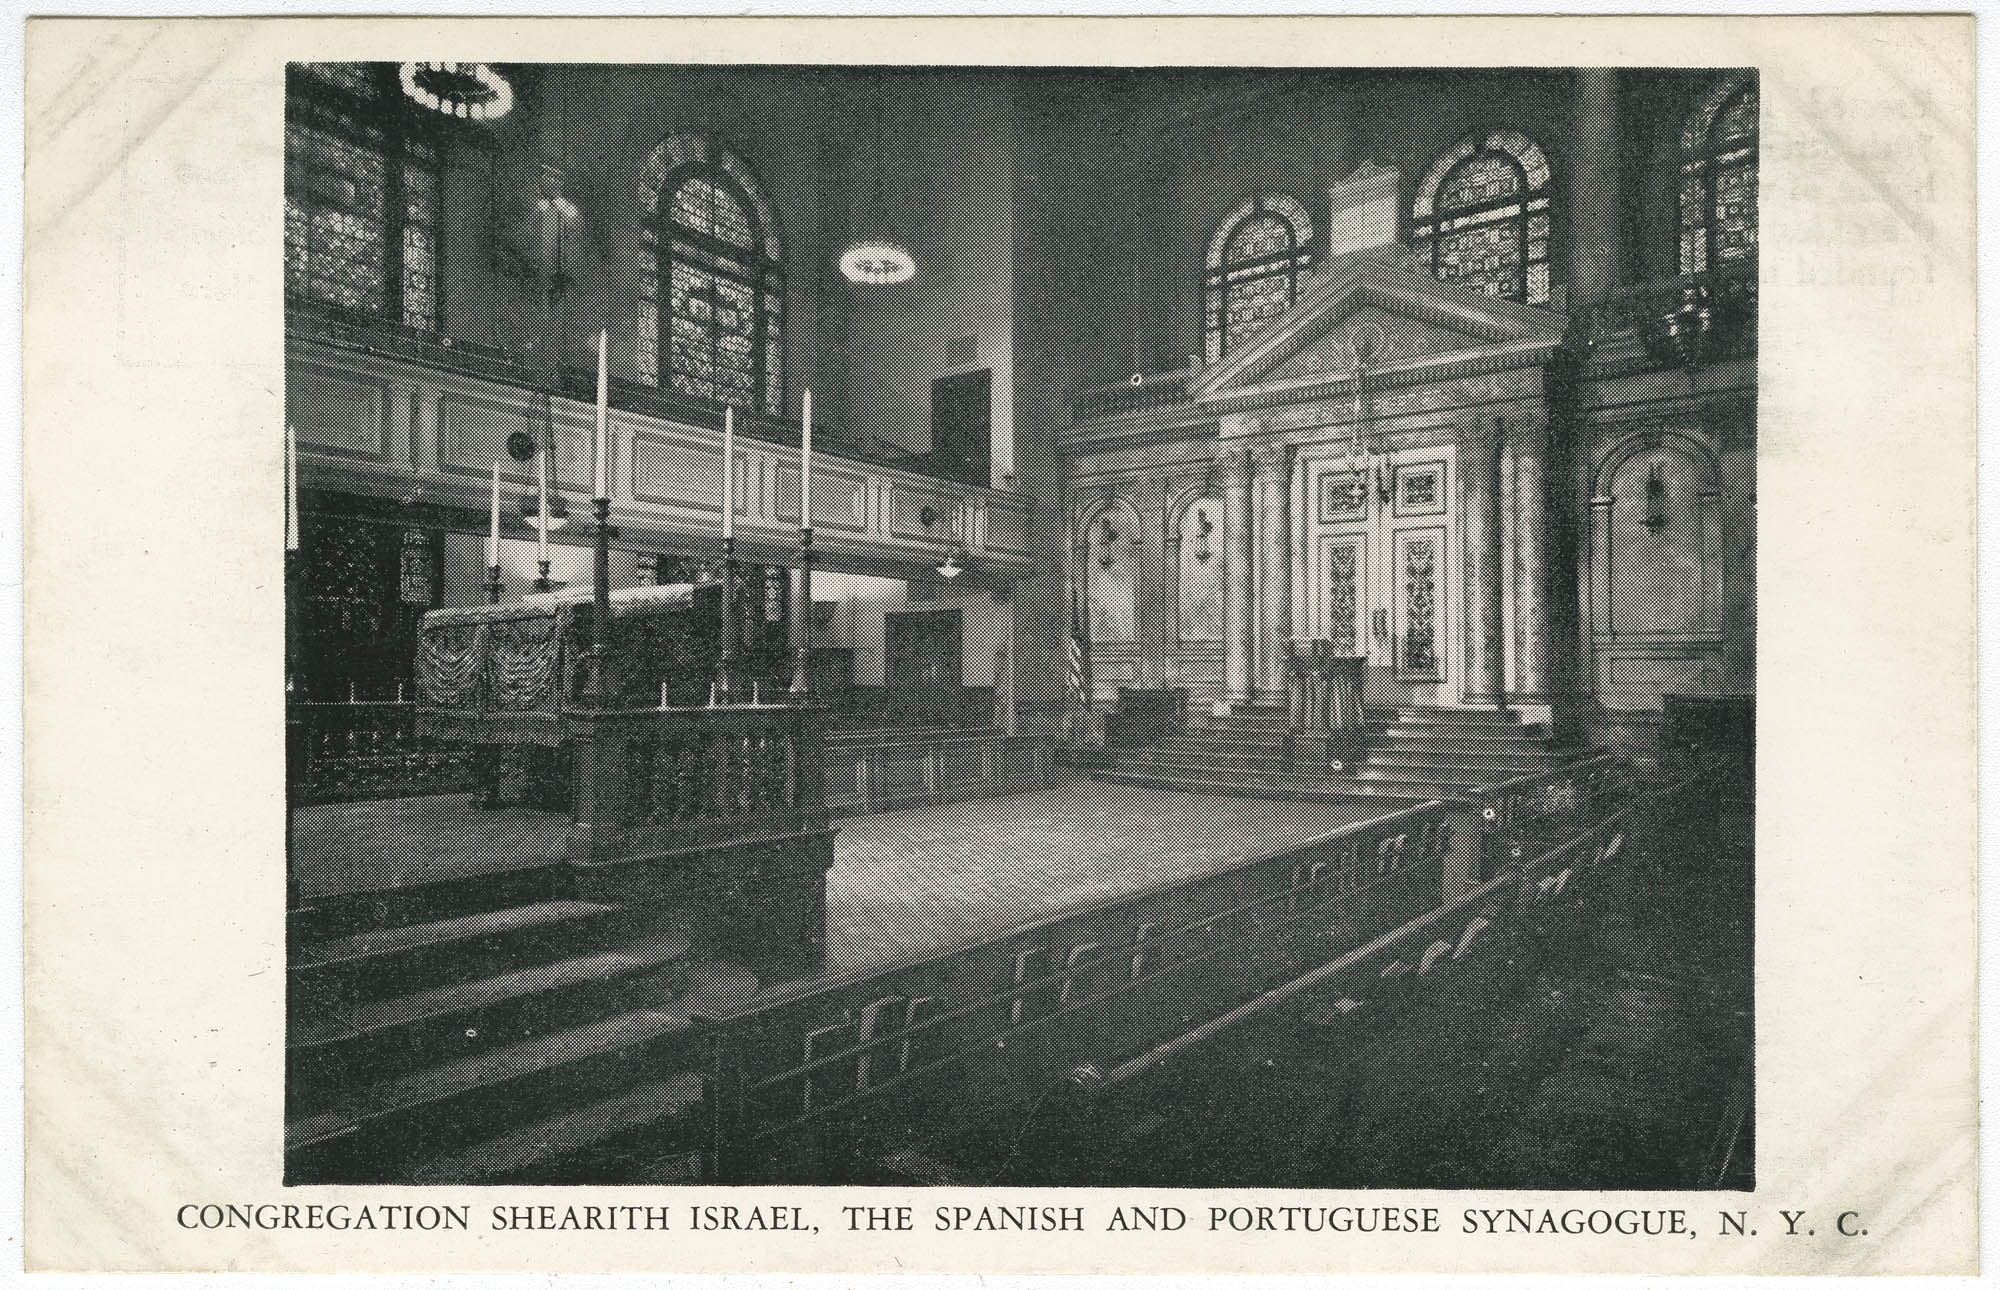 Congregation Shearith Israel, The Spanish and Portuguese Synagogue, N.Y.C.